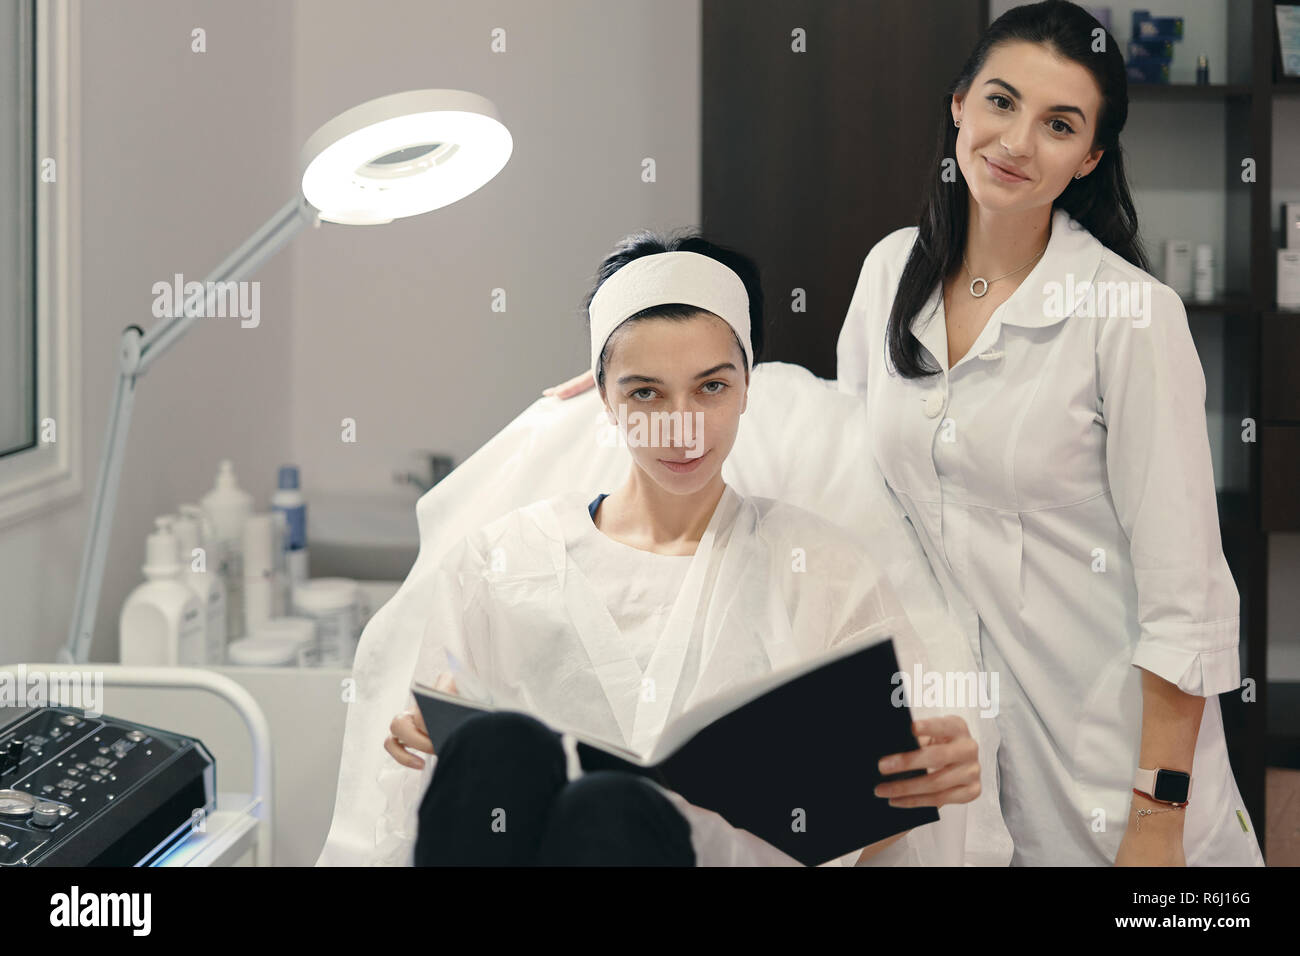 Pretty woman cosmetologist showing to her patient innovations in cosmetology in a magazine while getting ready for facial procedures. - Stock Image